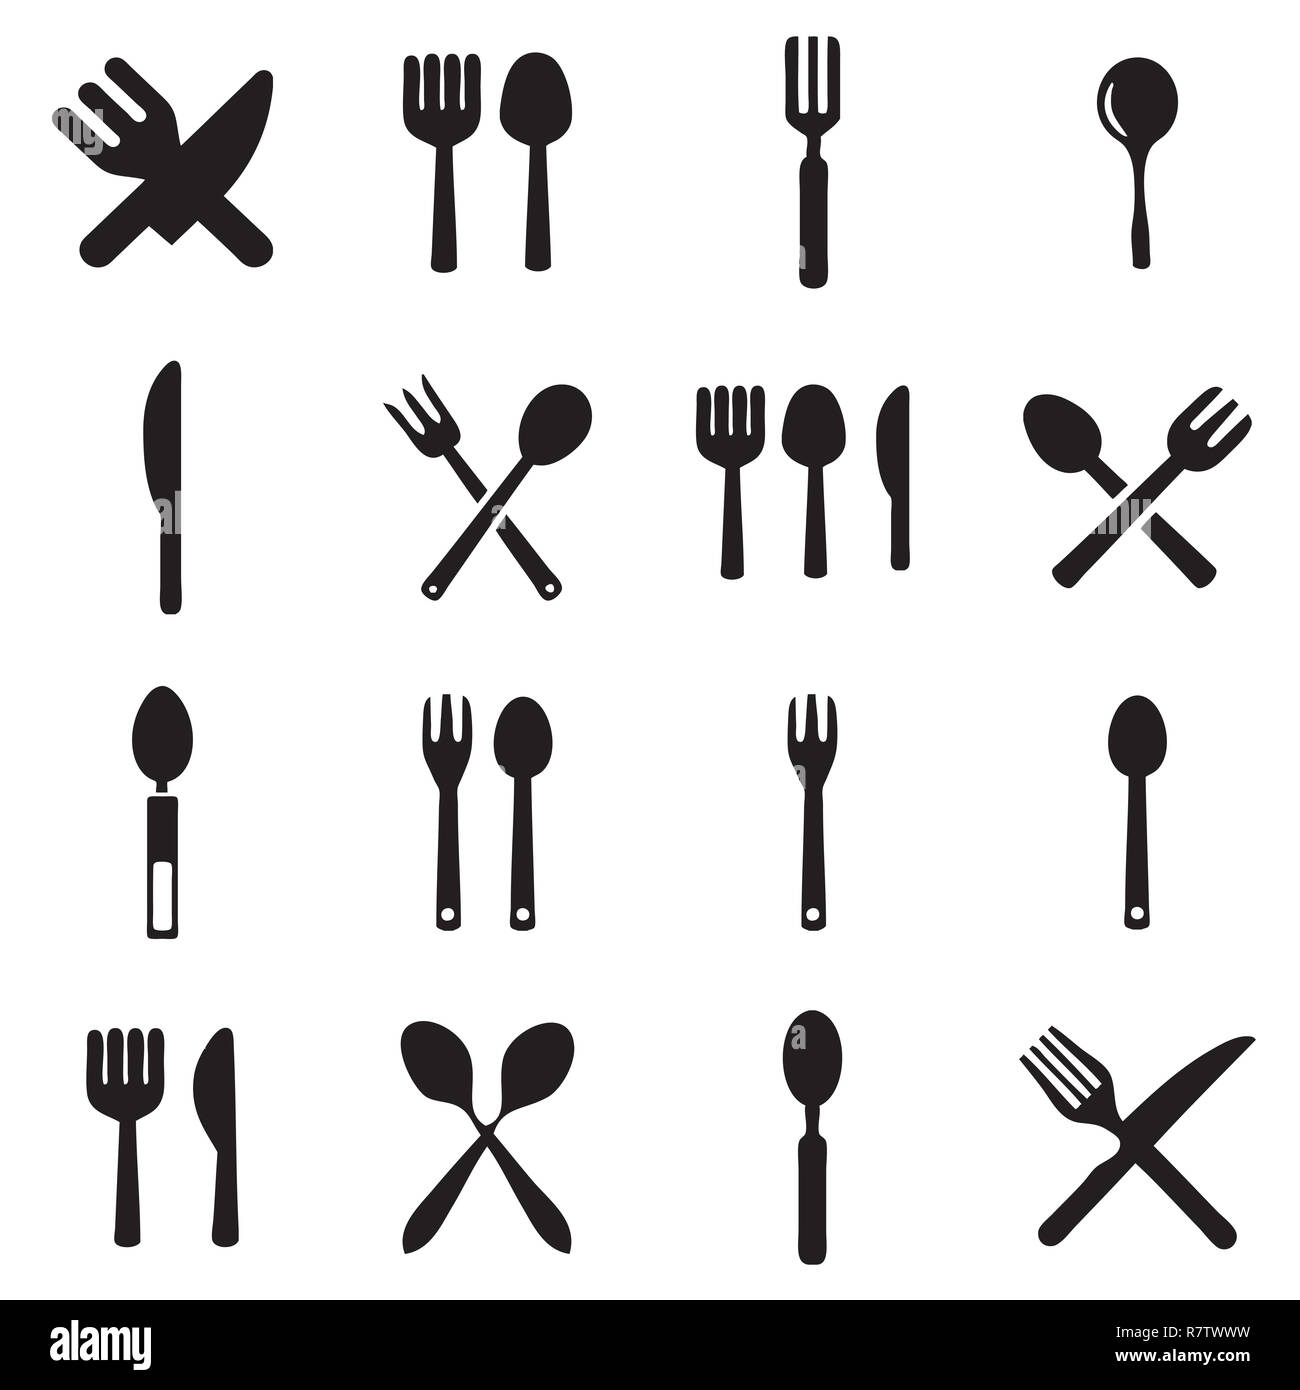 kitchen fork and spoon icon vectors - Stock Image